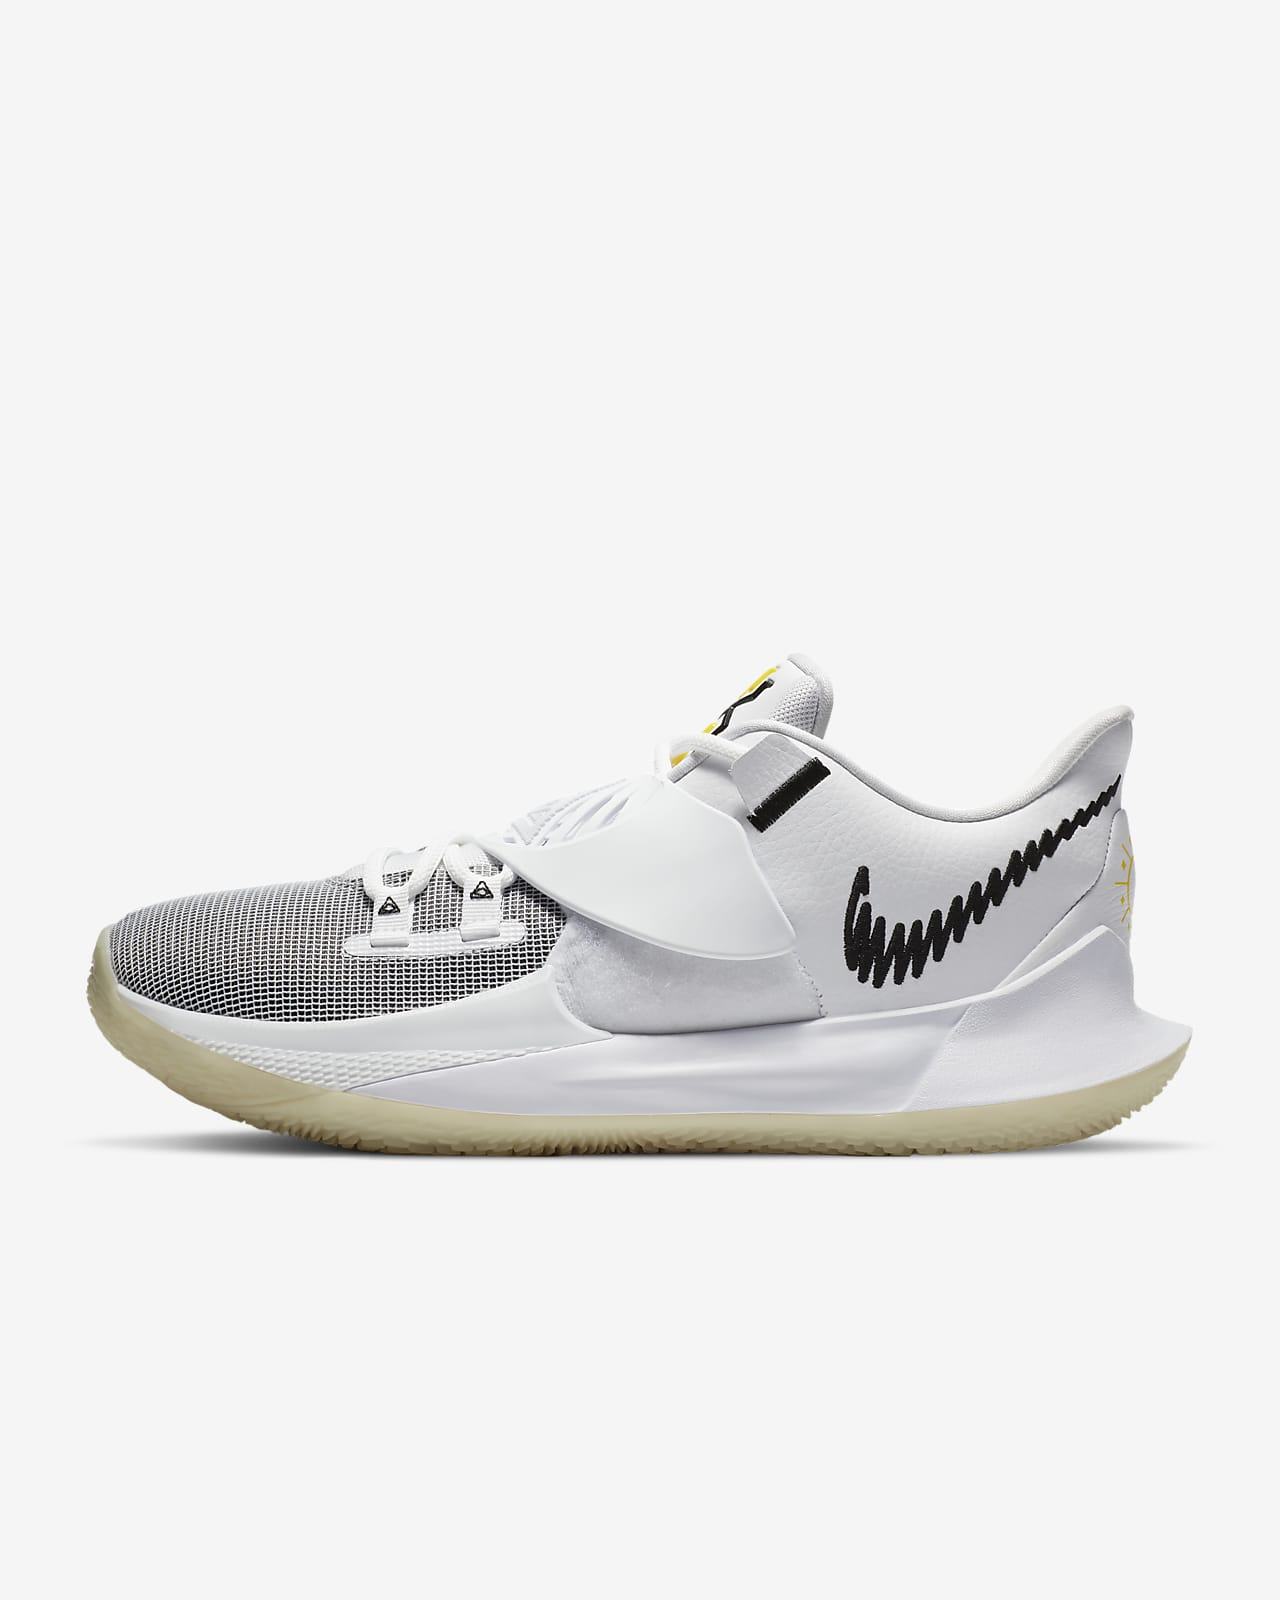 Kyrie Low 3 EP Basketball Shoe